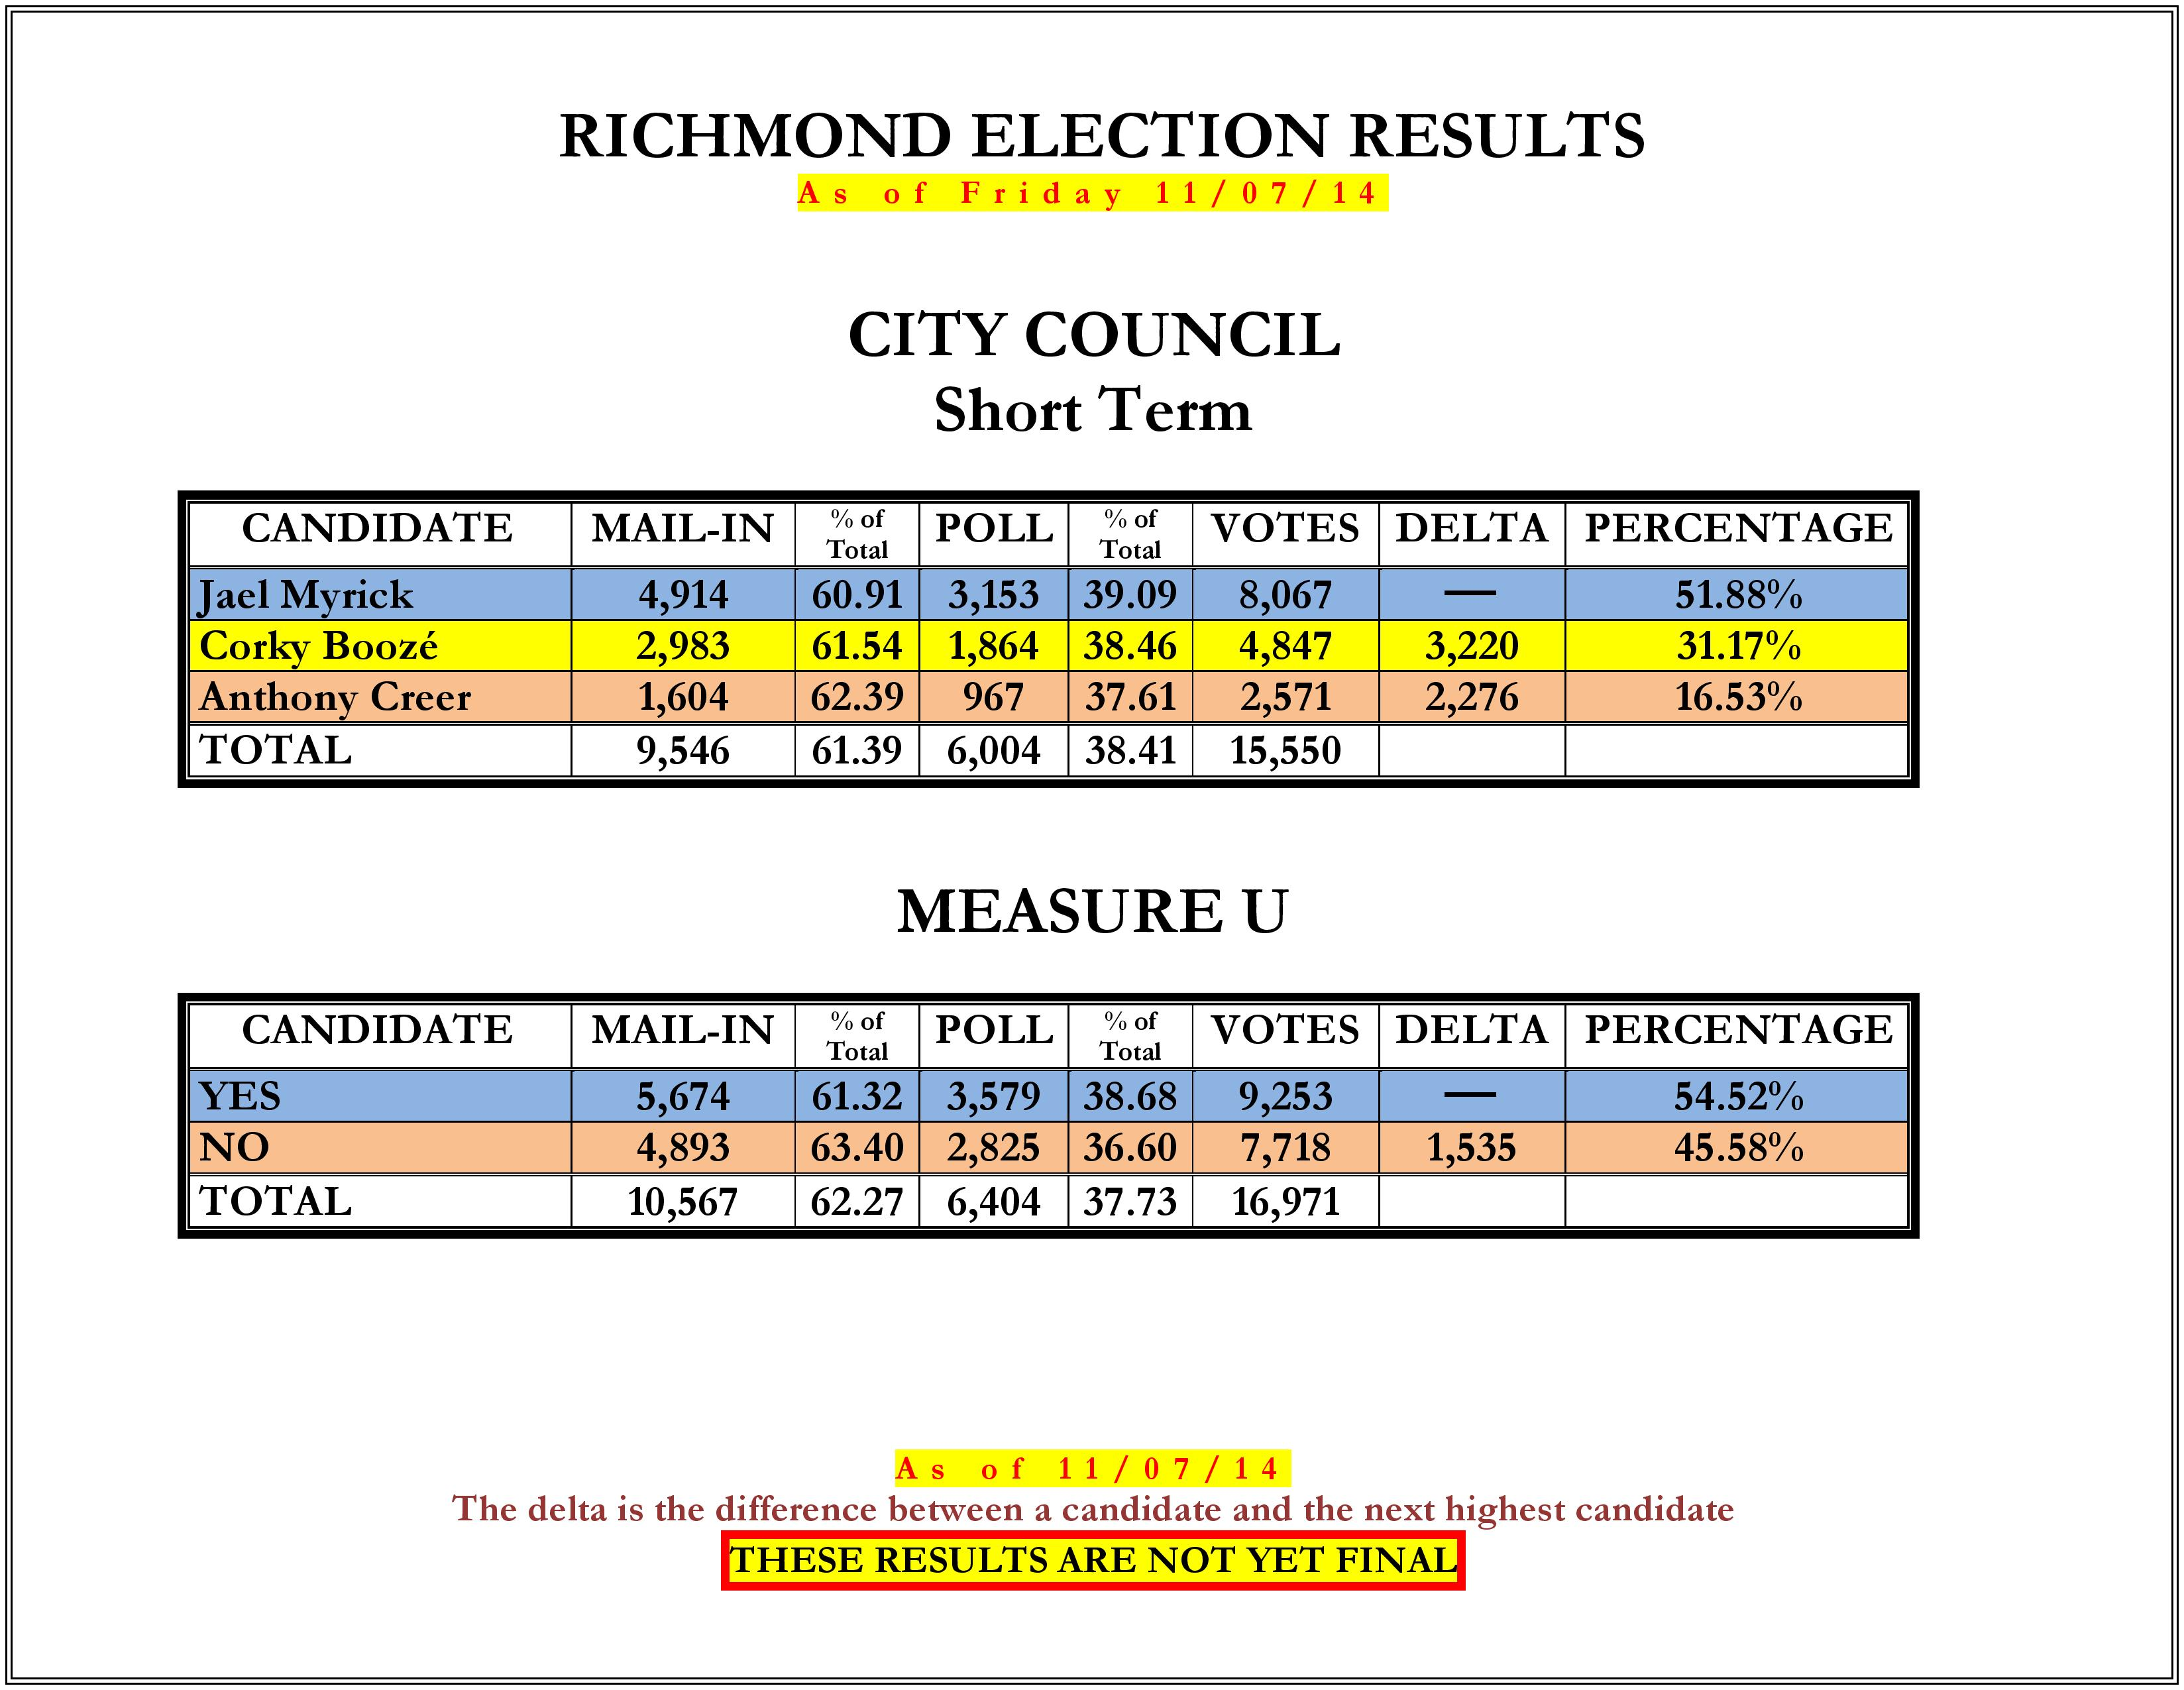 14_Richmond_Election_Results-2_11_07_14-page-002.jpg